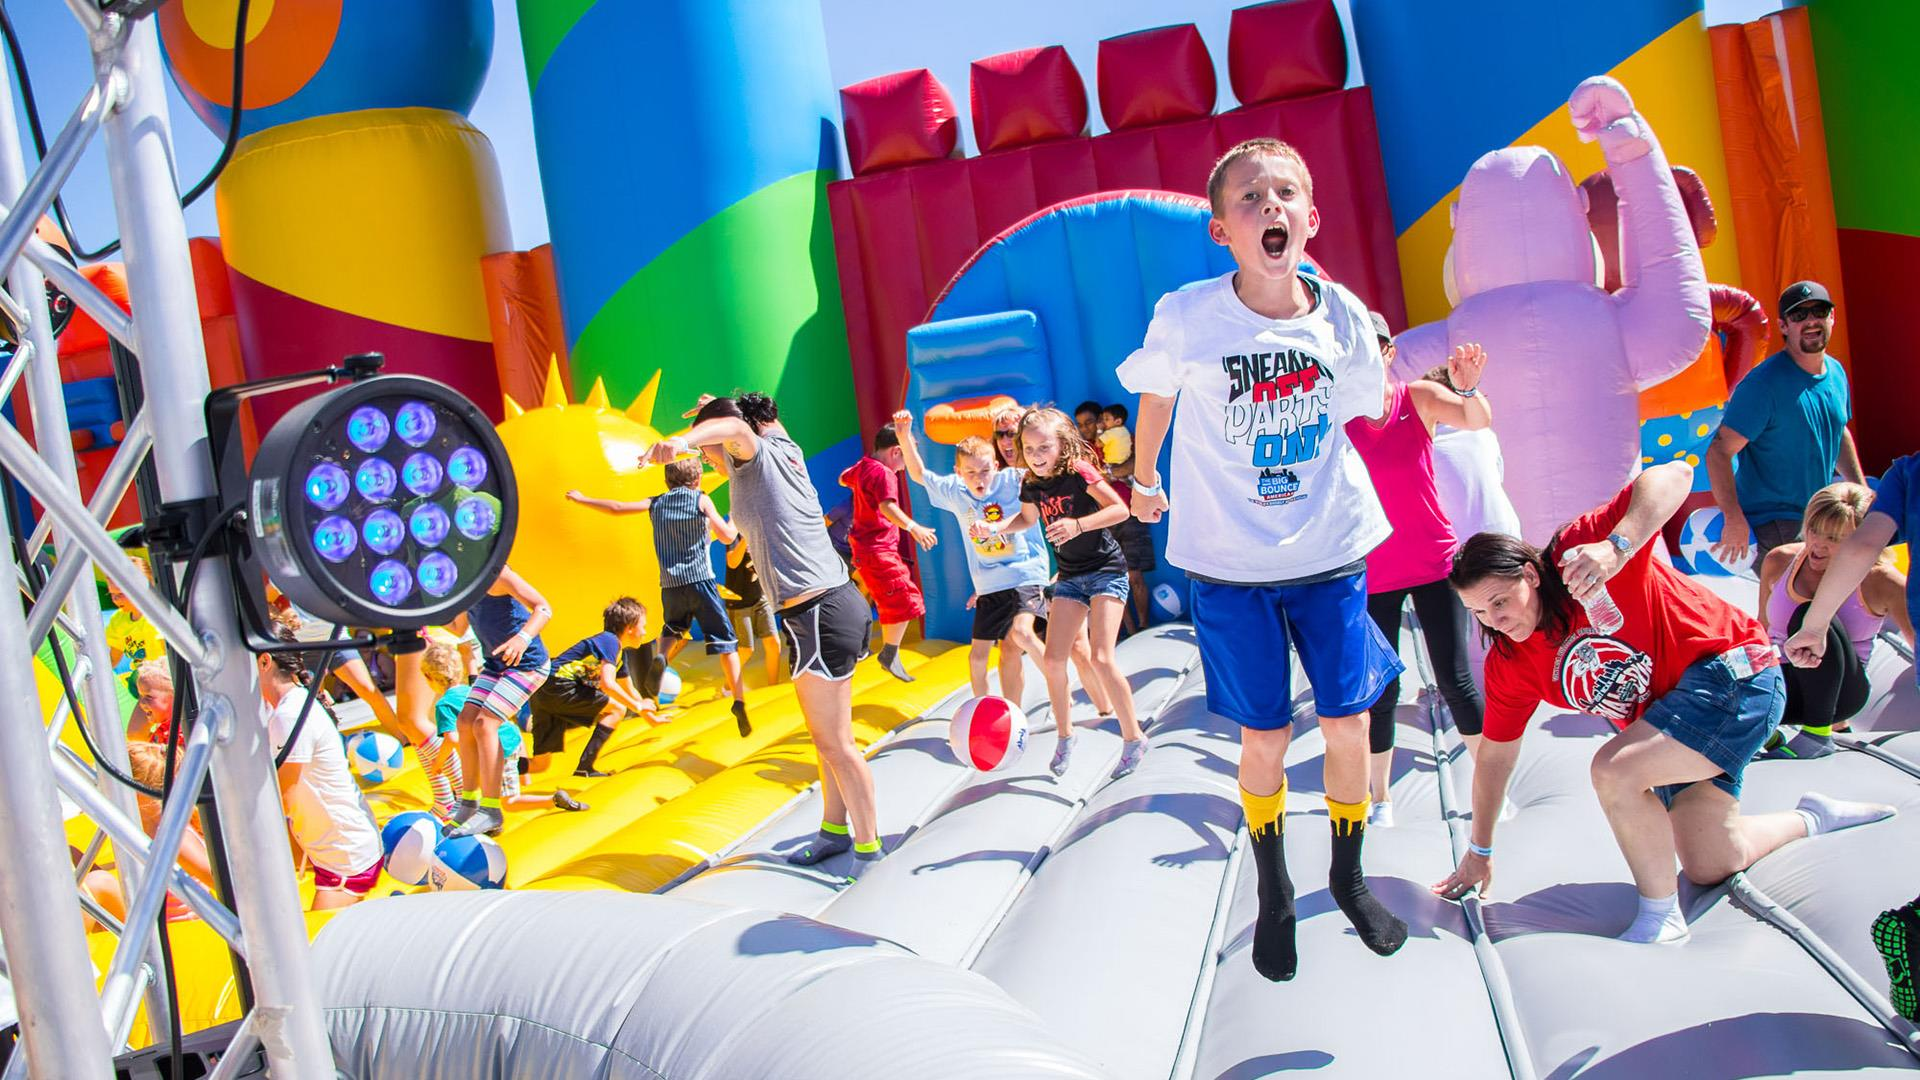 The biggest bounce house in the world is 10,000 square feet